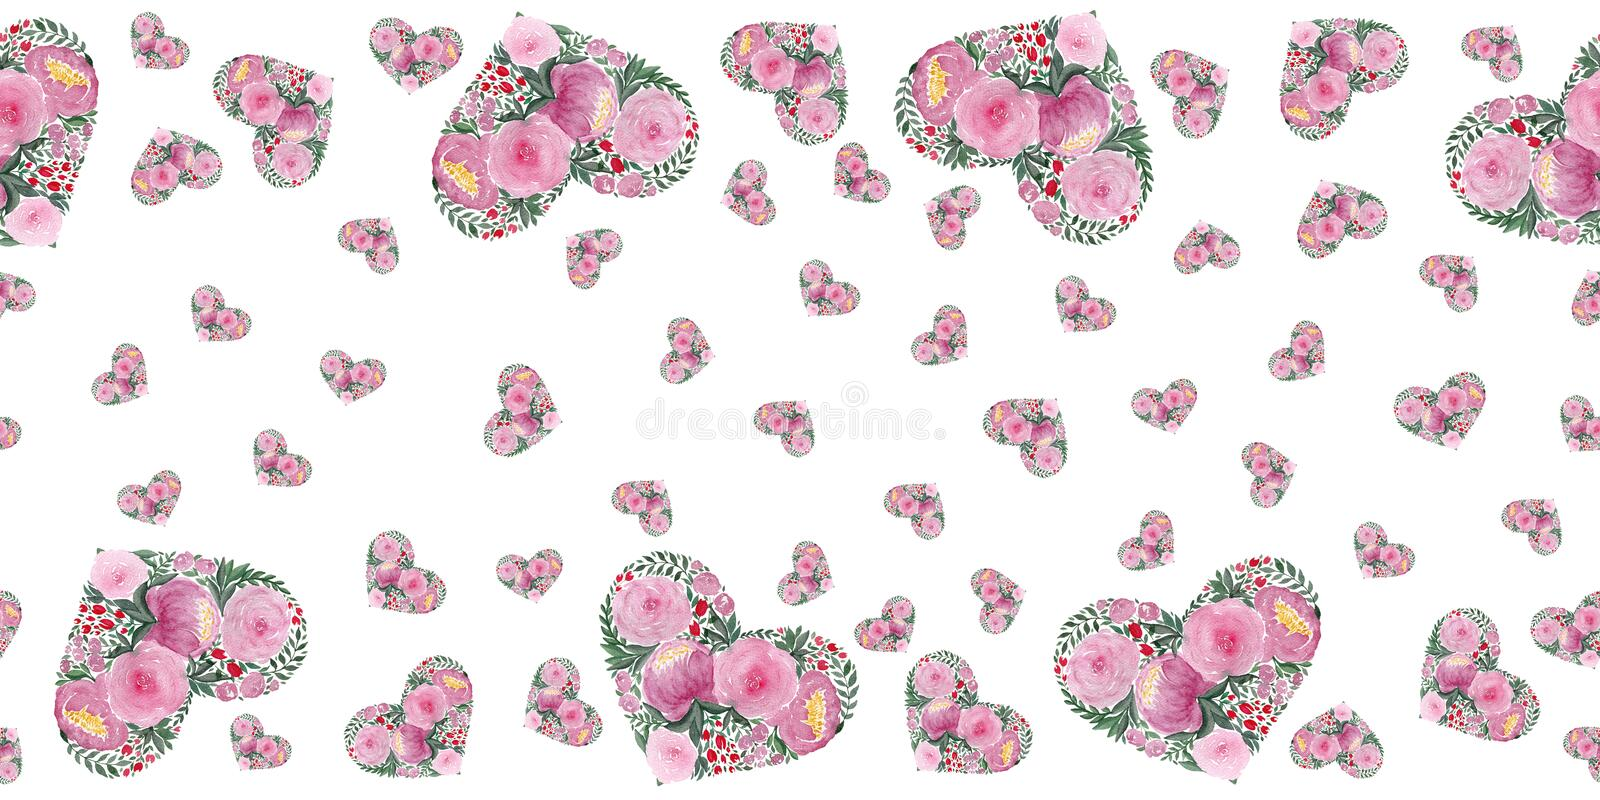 Love background with watercolor floral hearts design, horizontal seamless pattern with hearts, mothers day or valentines day backg. Love background illustration vector illustration